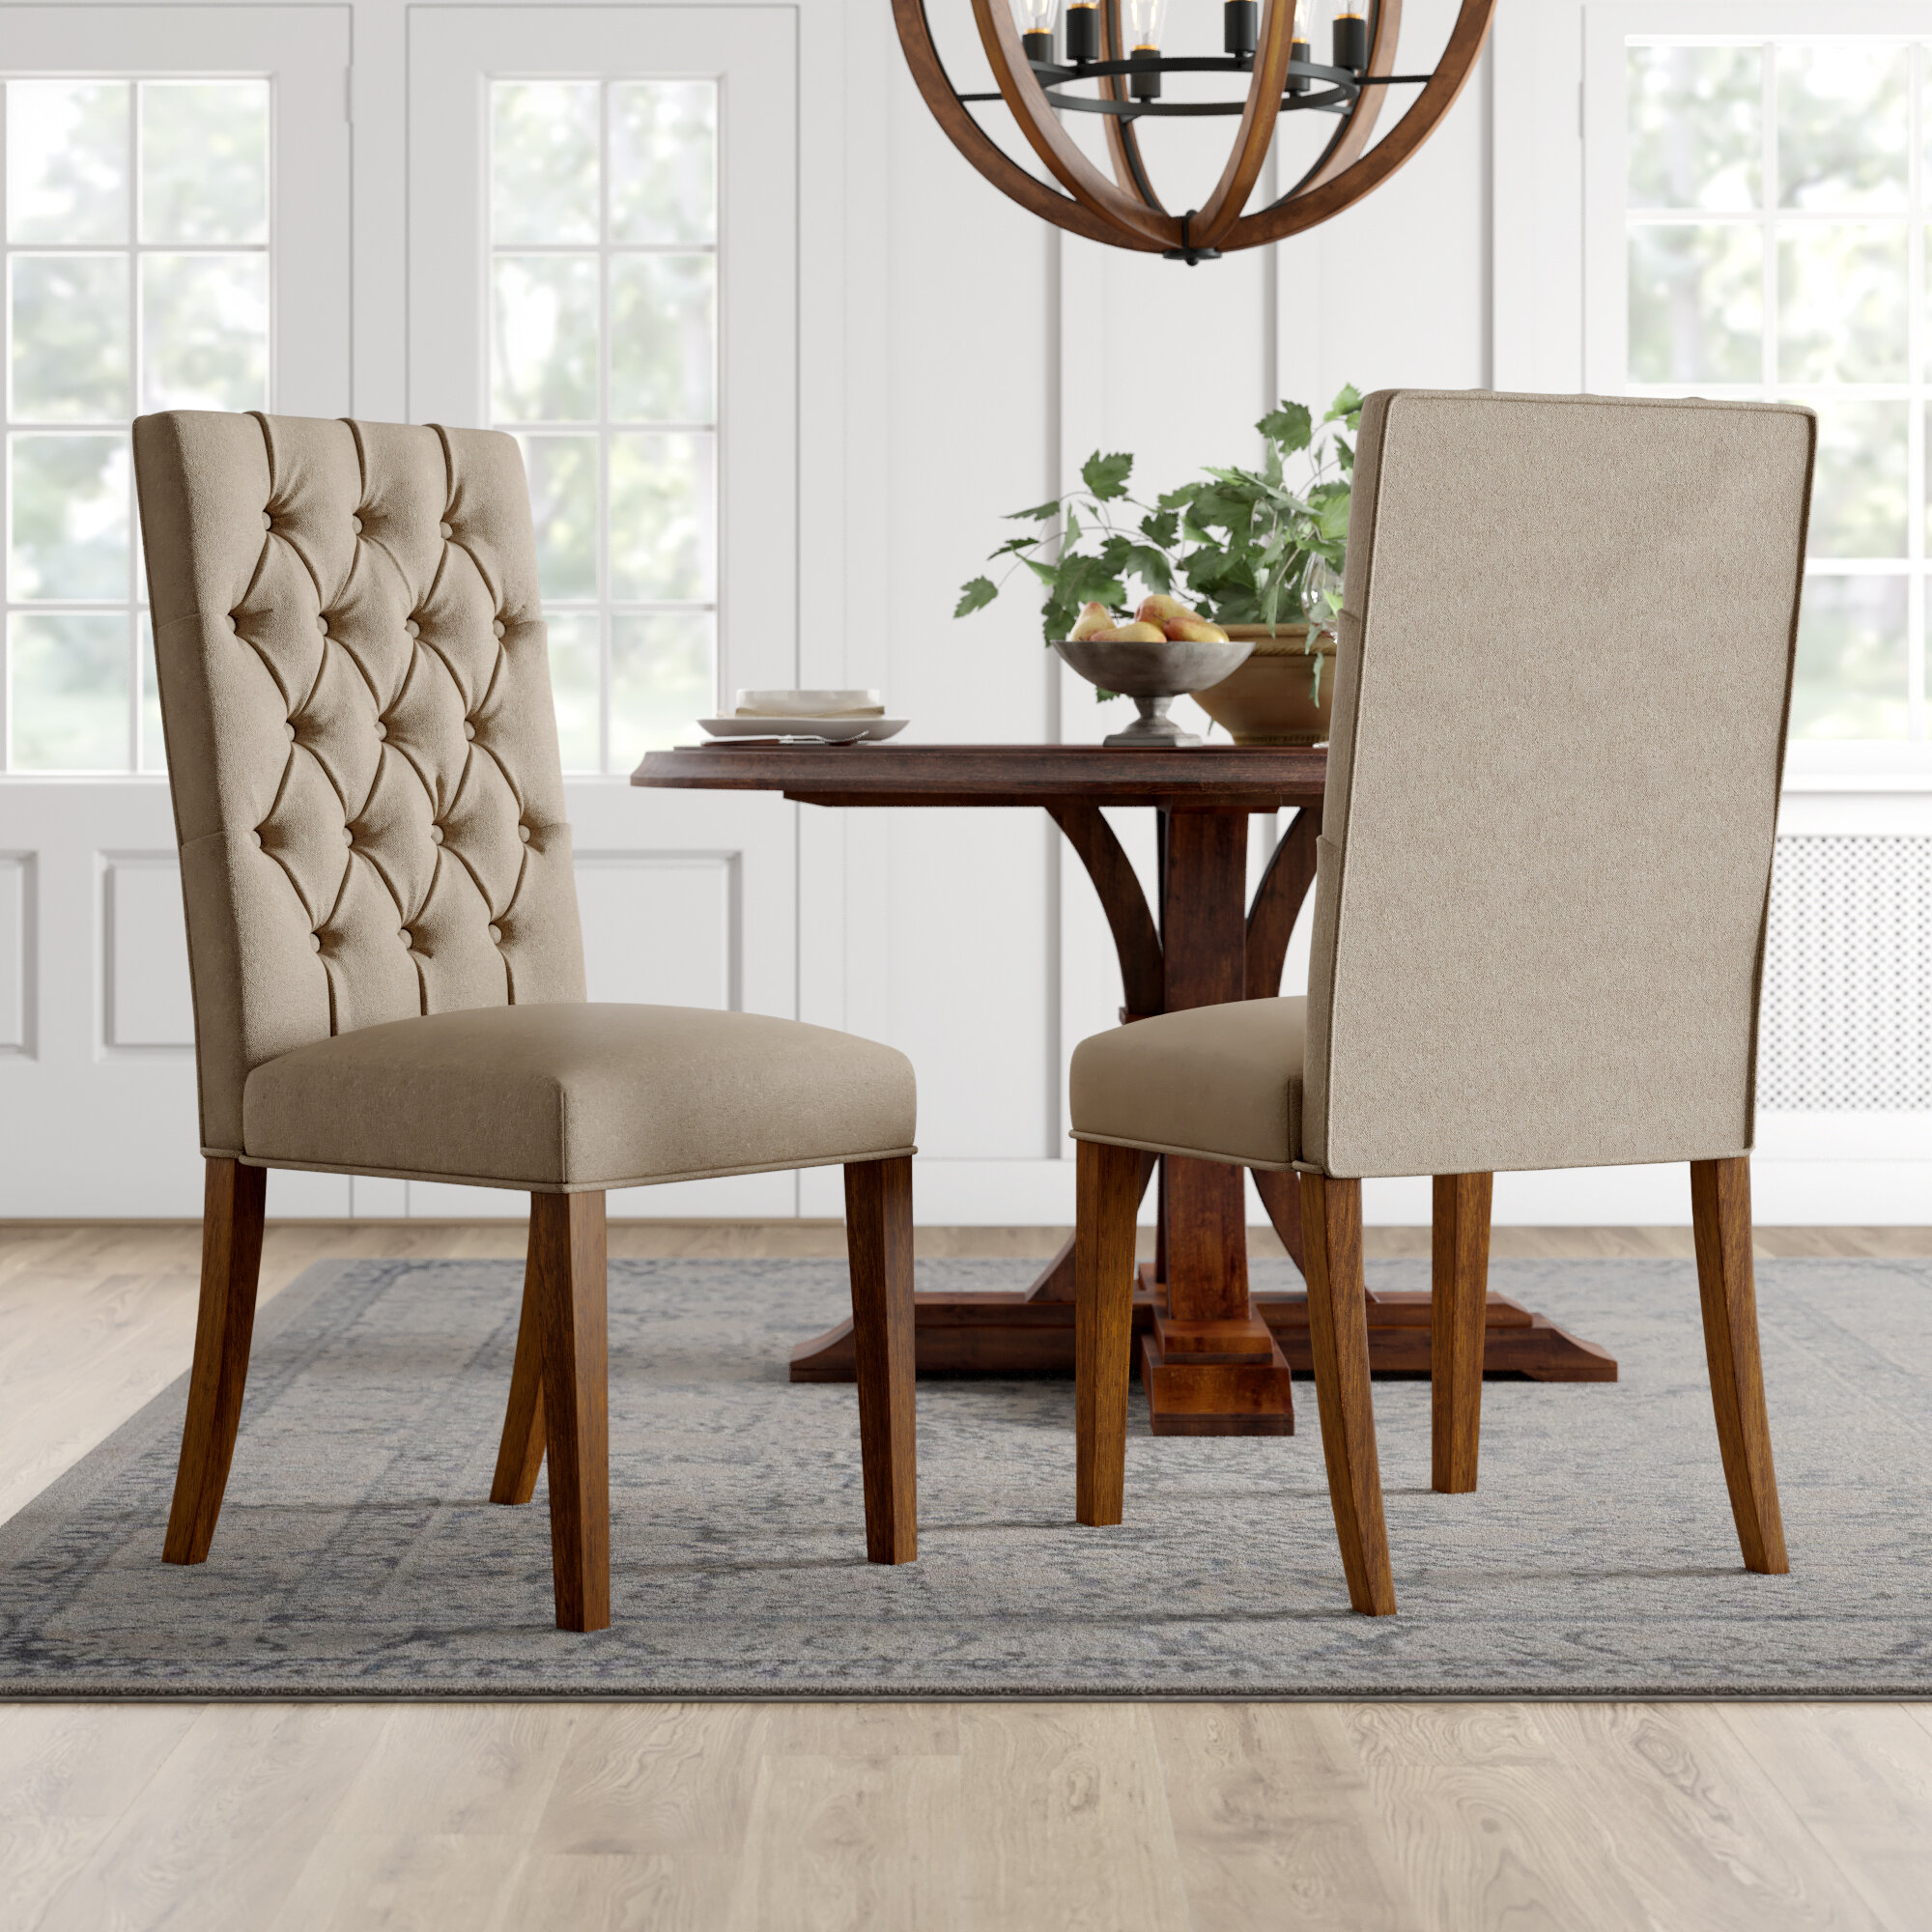 Bedias Tufted Upholstered Dining Chair In Beige Reviews Birch Lane